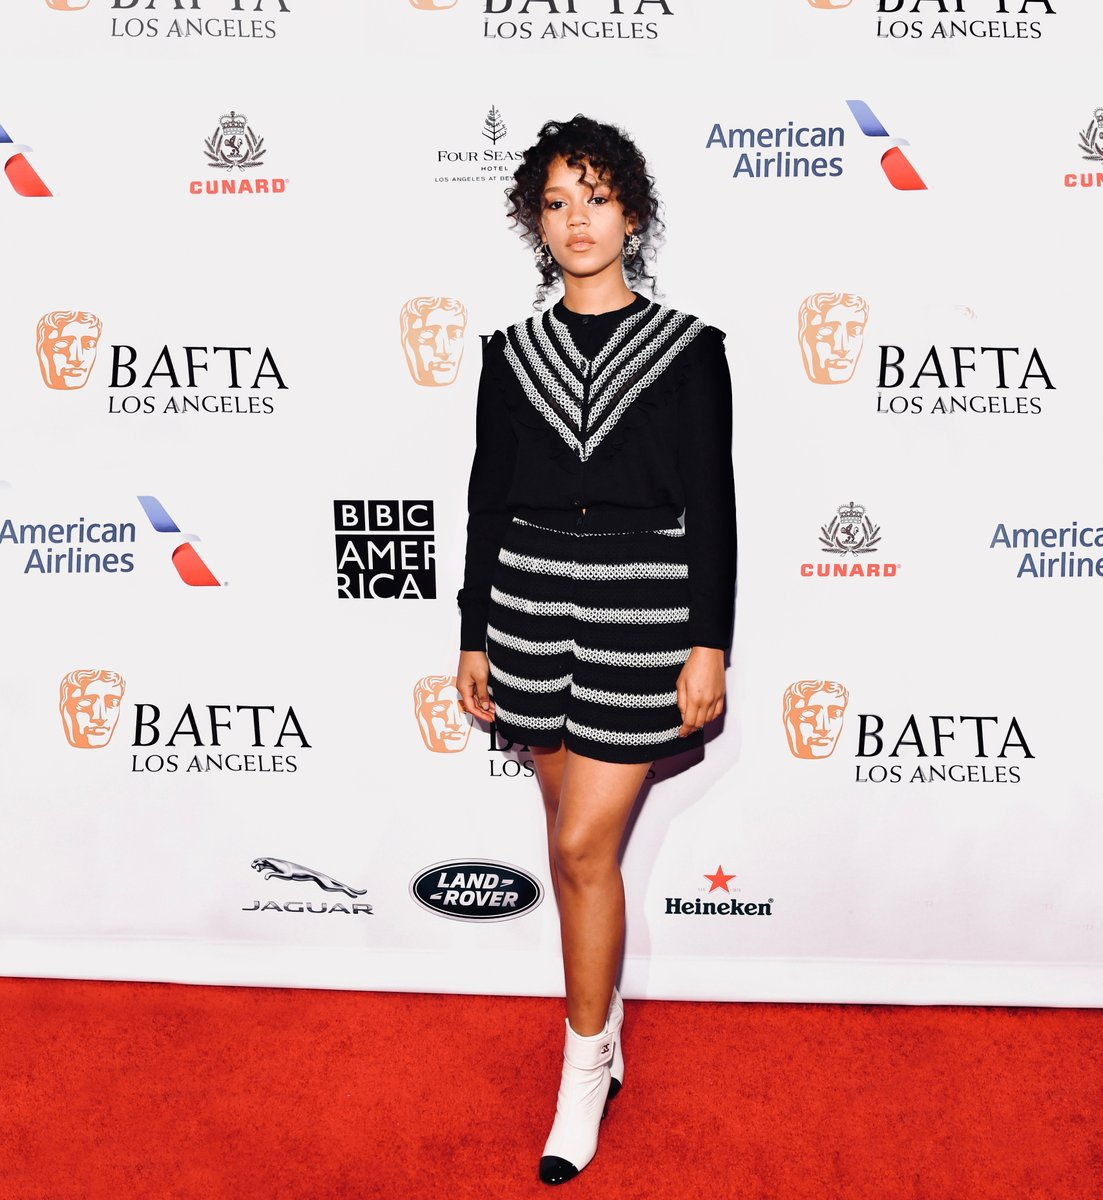 Friend of the House Taylor Russell attended the annual BAFTA TV Tea Party in Los Angeles in a black and white cardigan and shorts from the Spring-Summer 2020 collection. #CHANELinCinema #CHANELSpringSummer #EEBAFTAs